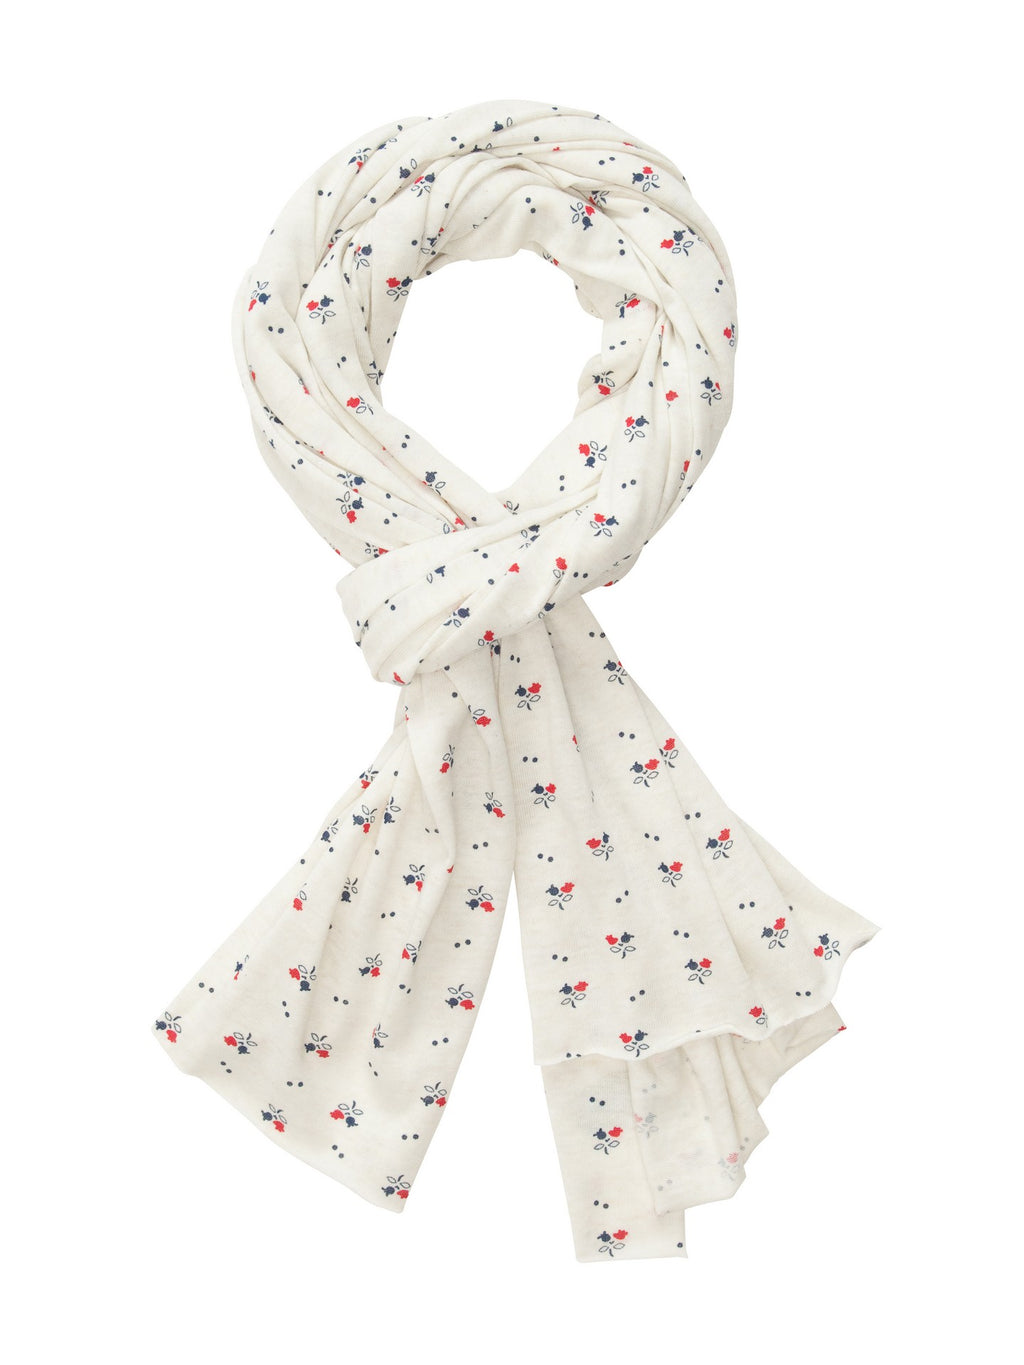 American Ditzy Oversized Scarf - thecodexclub